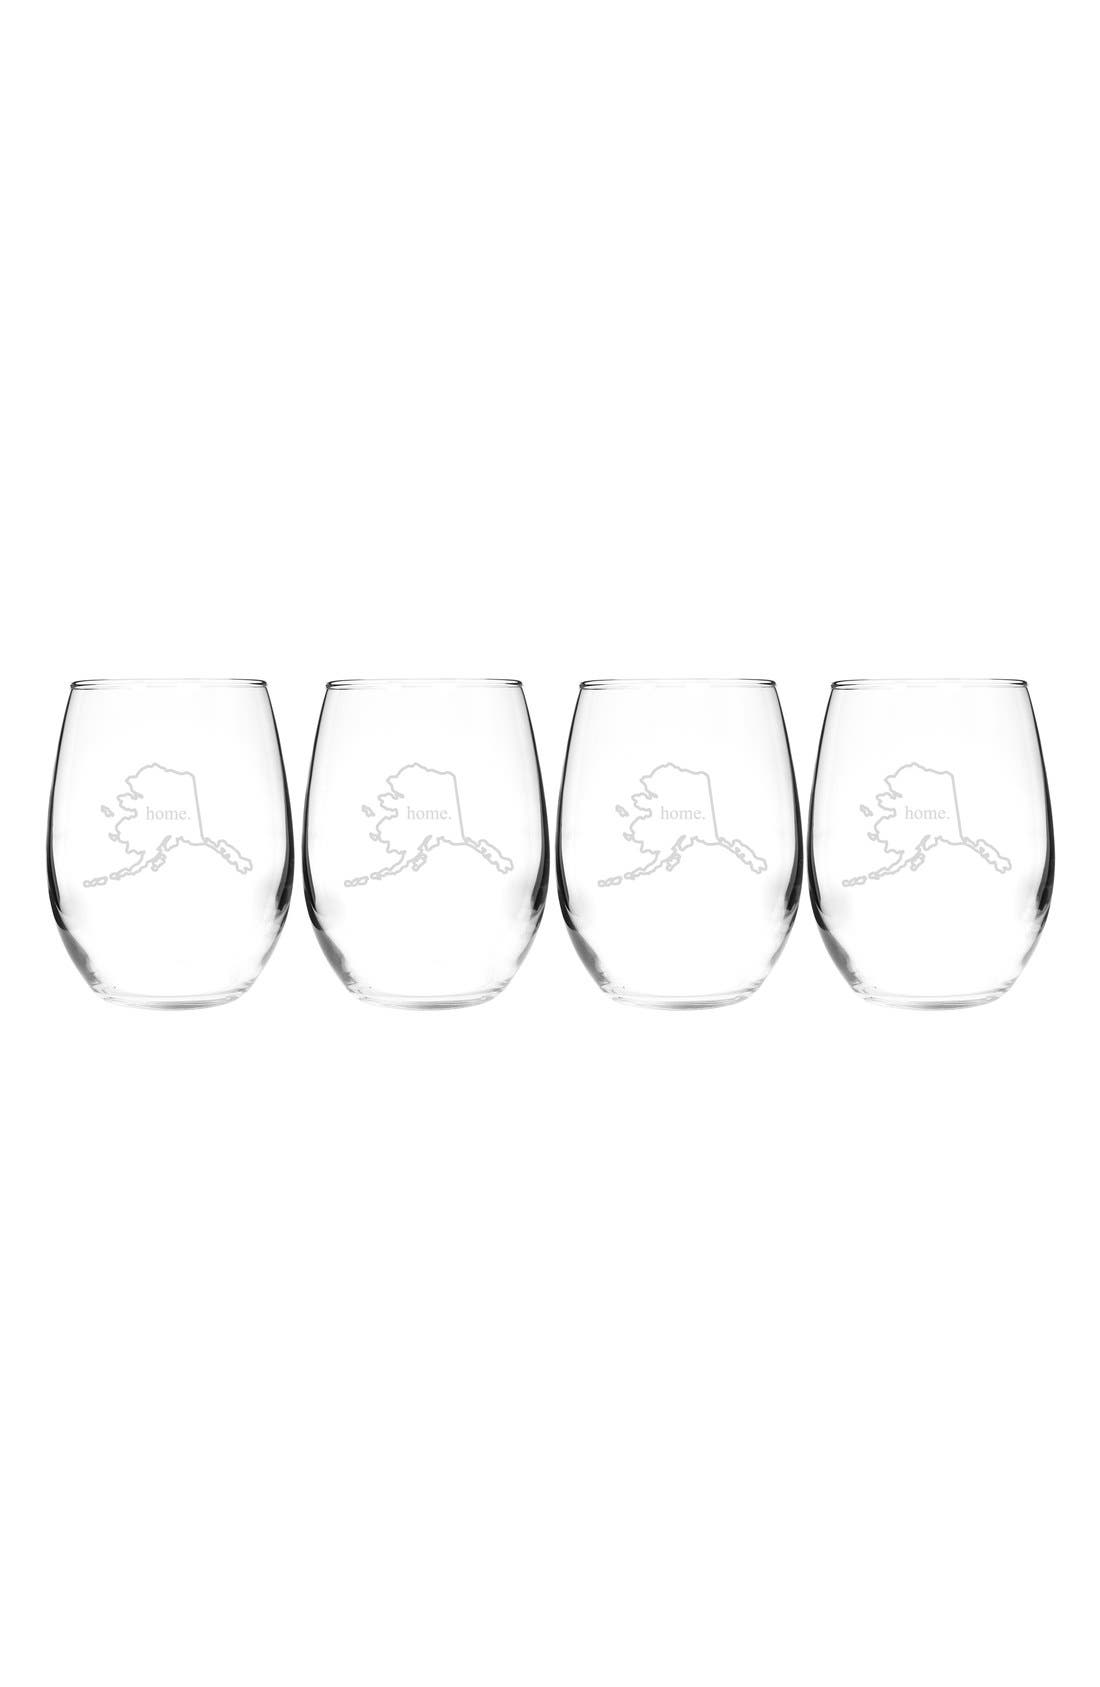 Home State Set of 4 Stemless Wine Glasses,                             Main thumbnail 2, color,